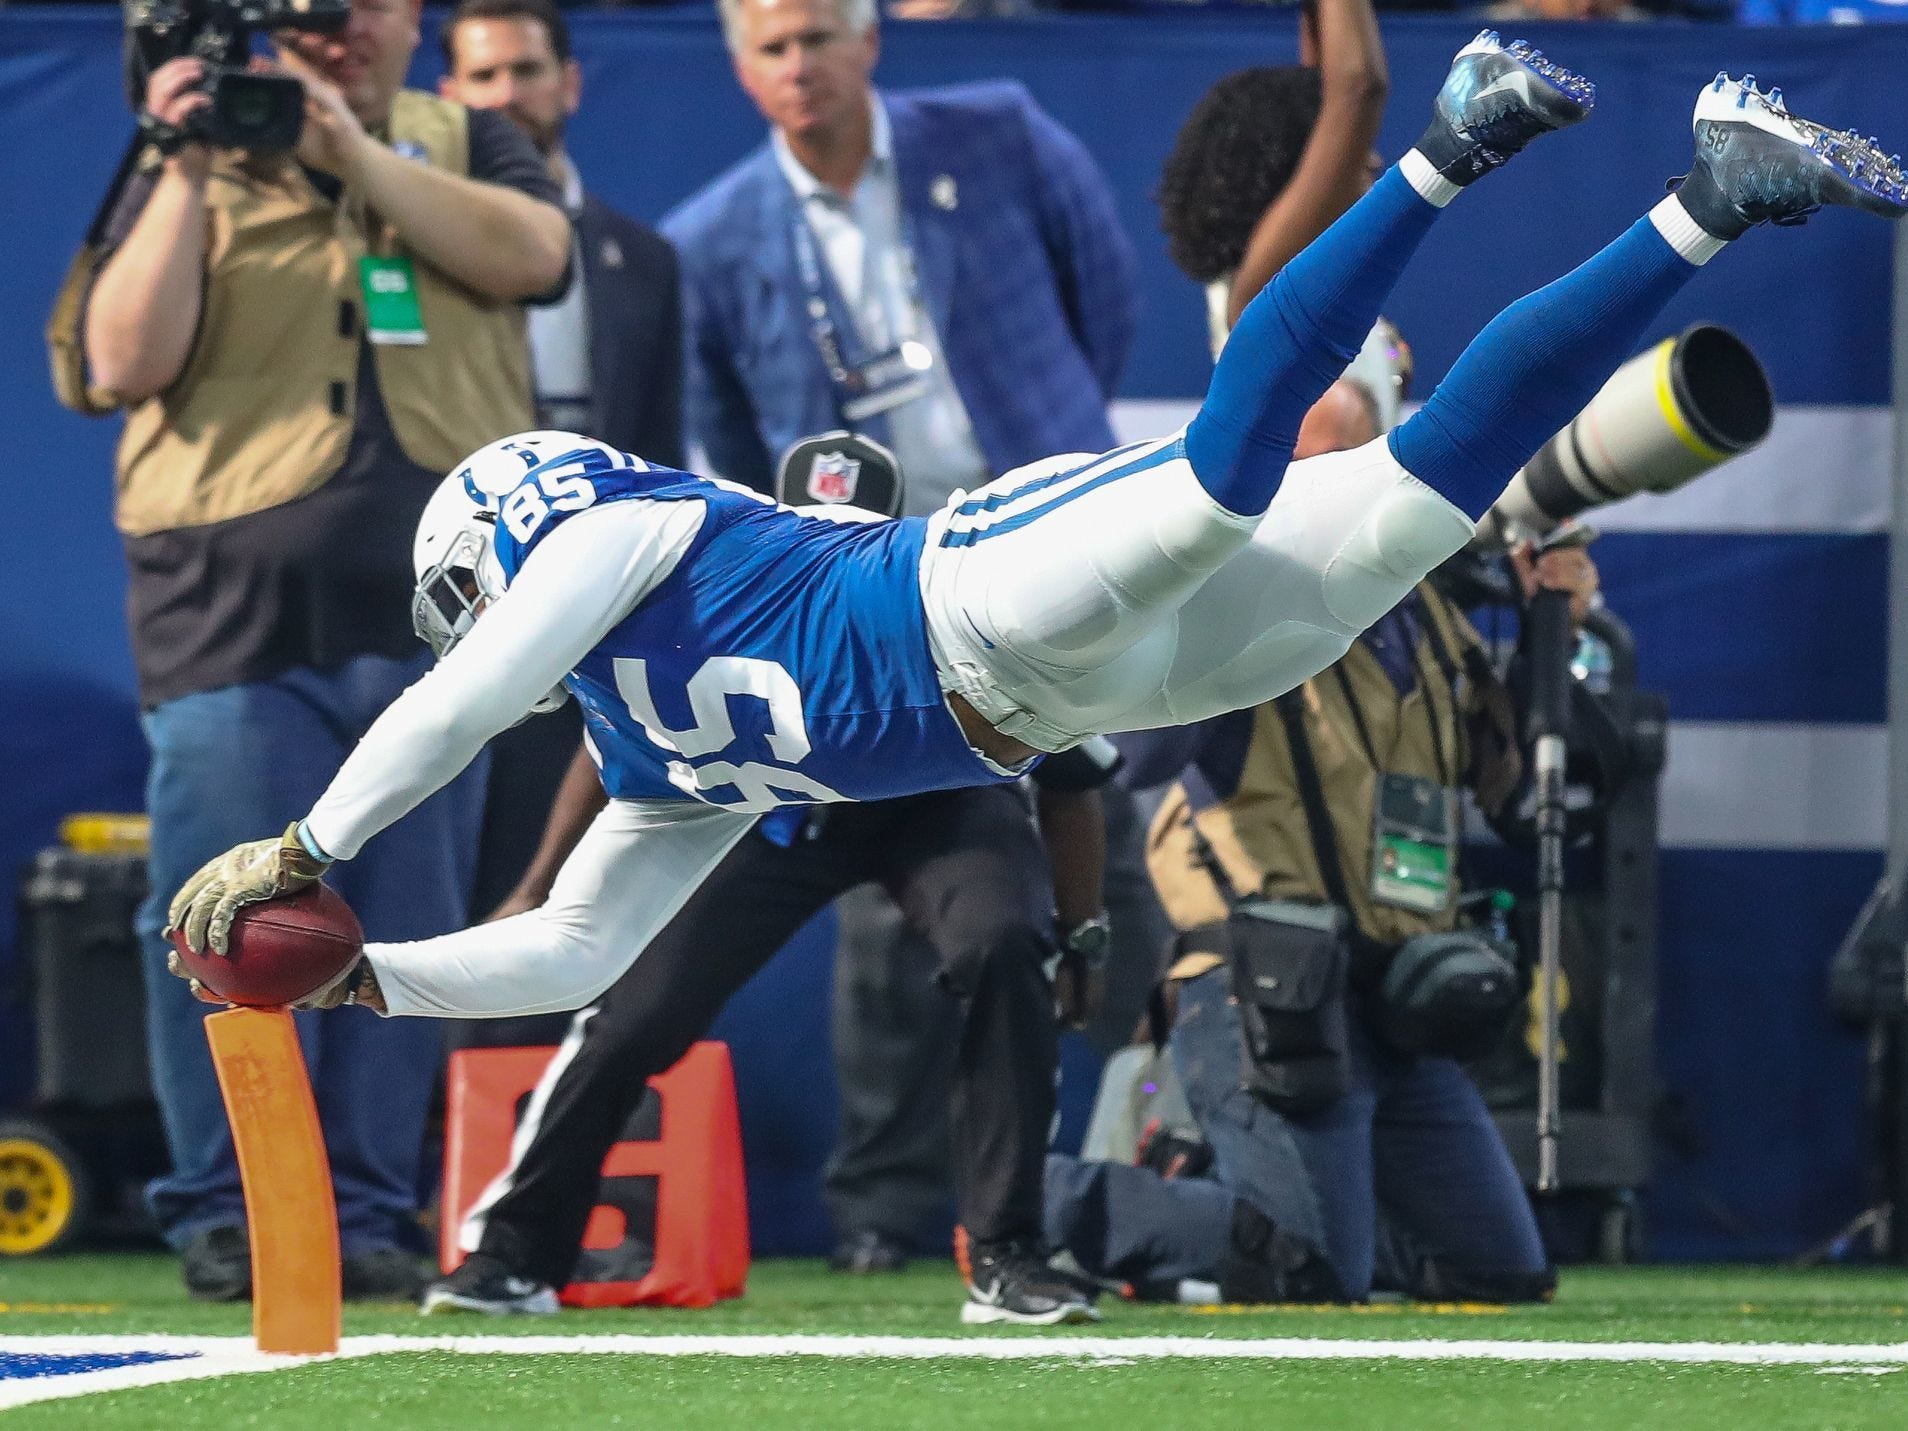 Nov. 11, 2018: Ebron dives for the end zone against the Jacksonville Jaguars.